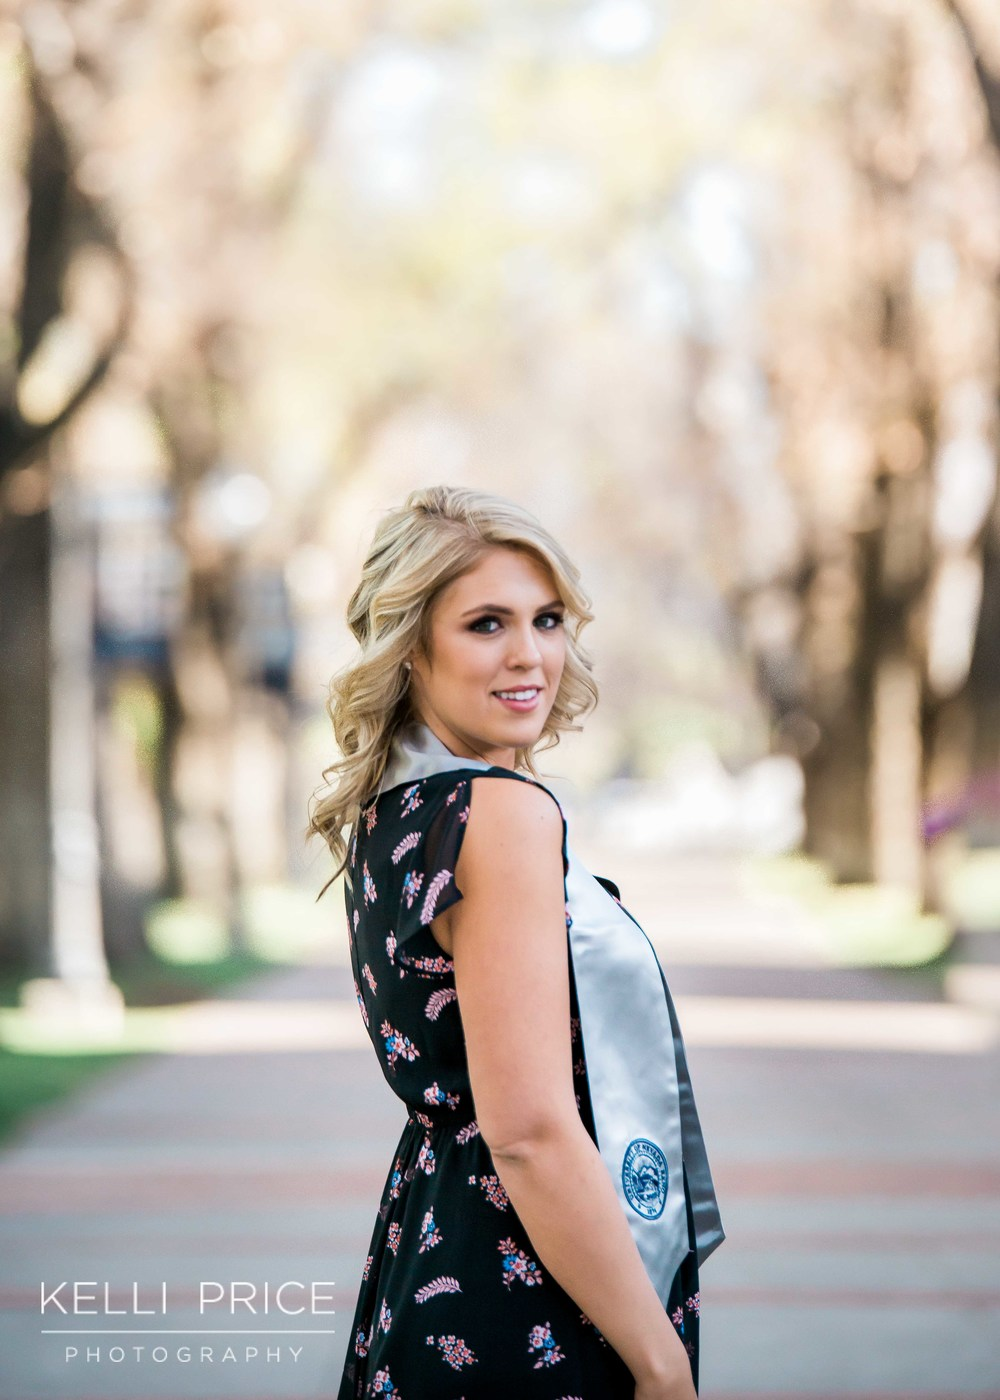 CollegeGraduationUNR17_KelliPricePhotography_RenoNevada_March2016.jpg